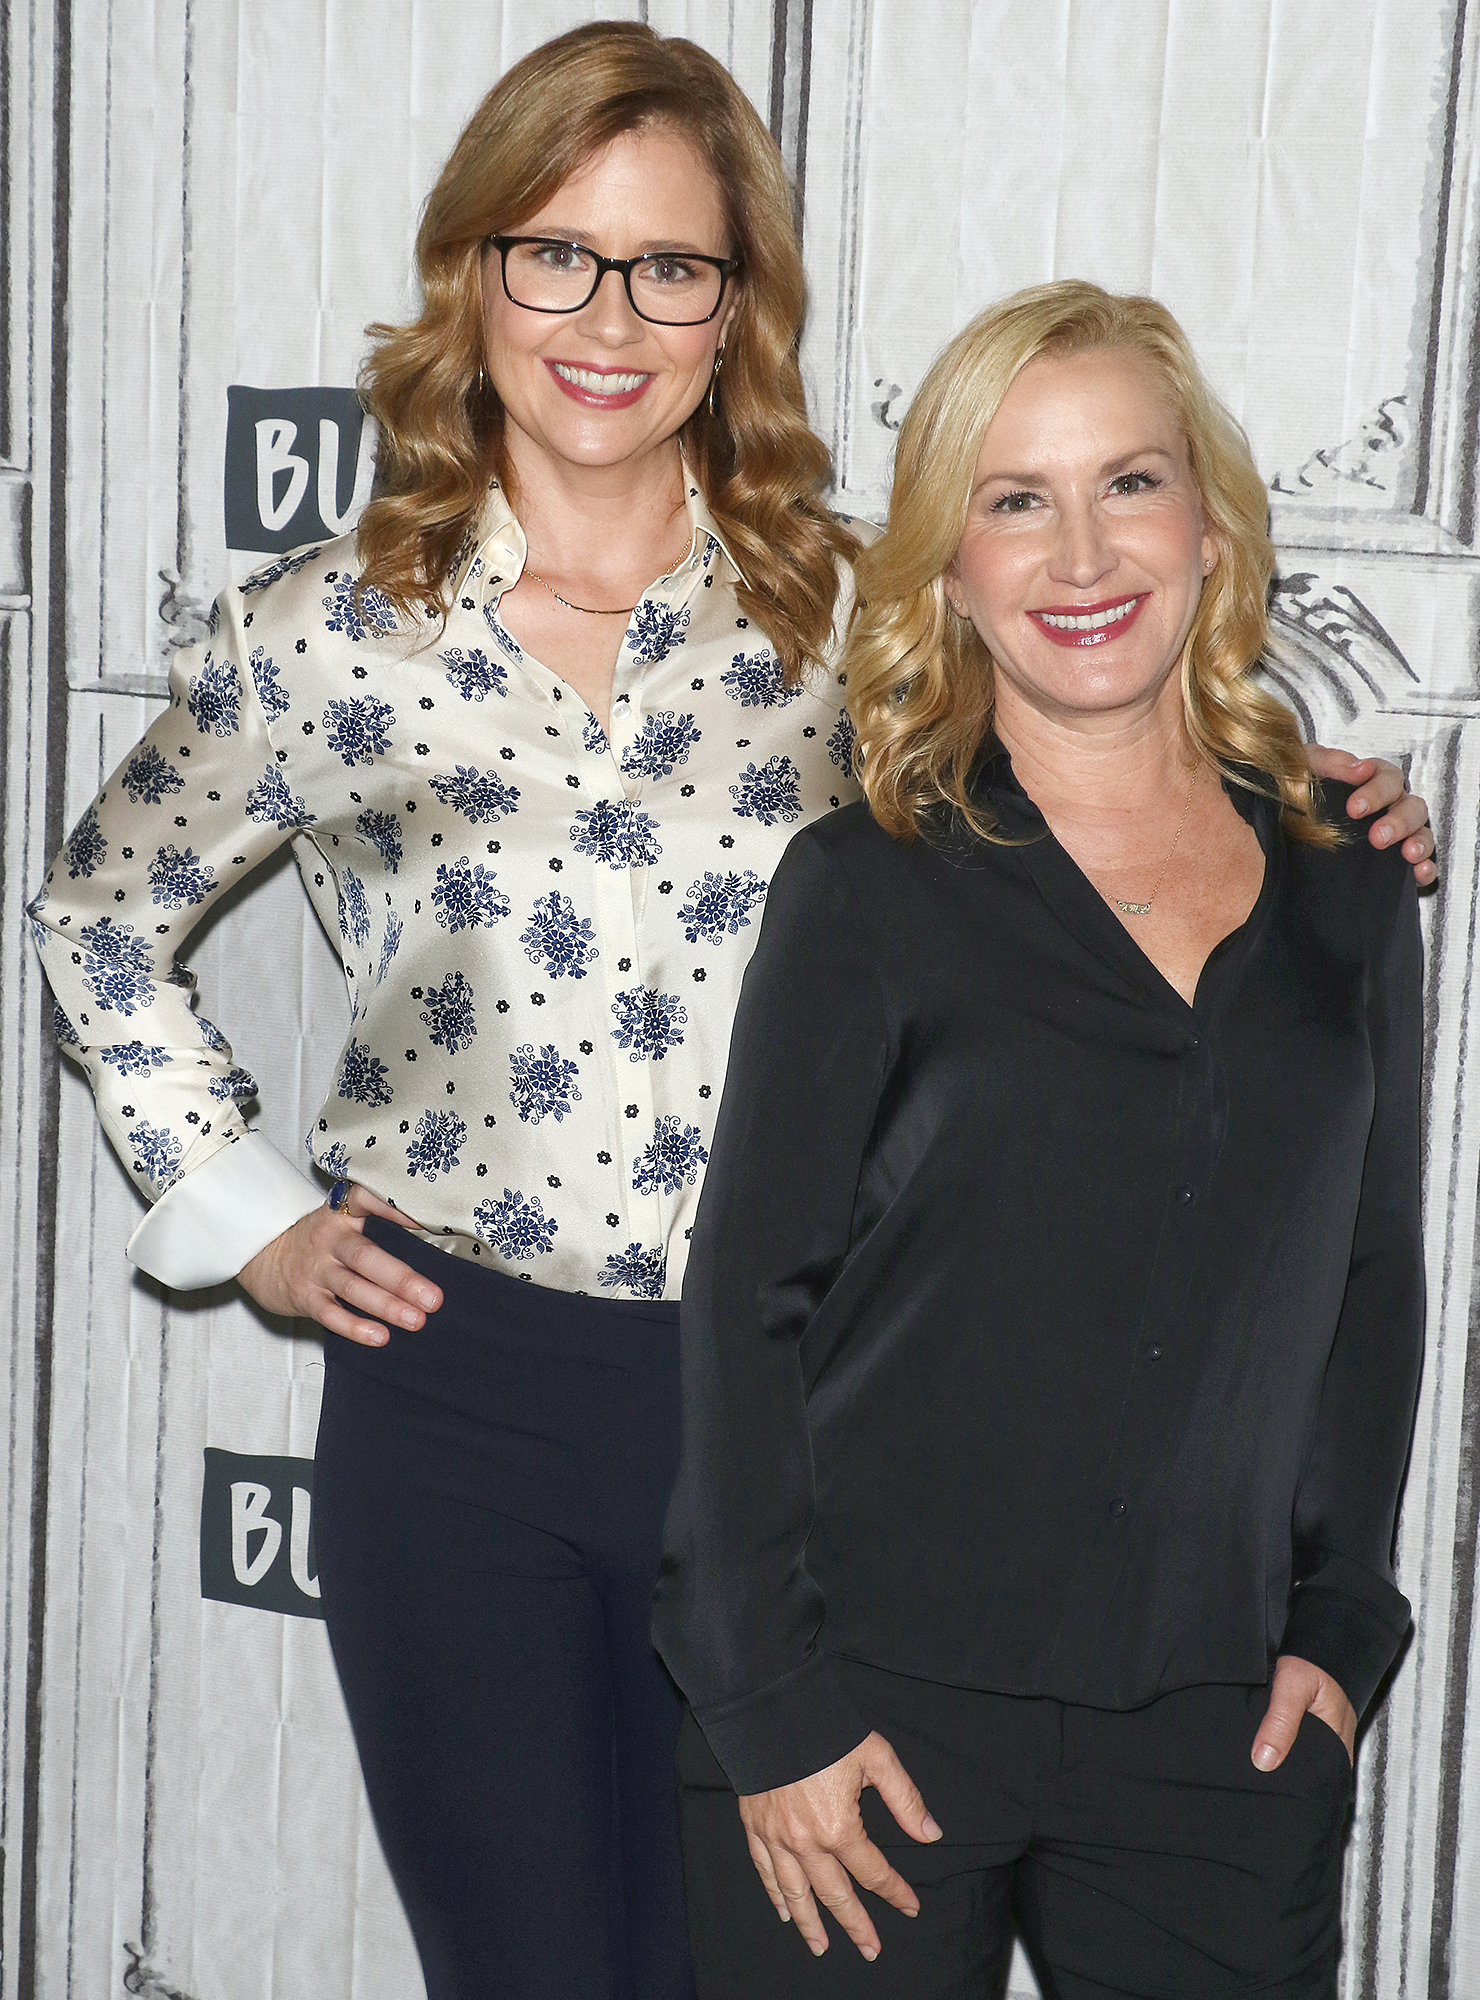 Jenna Fischer (L) and Angela Kinsey